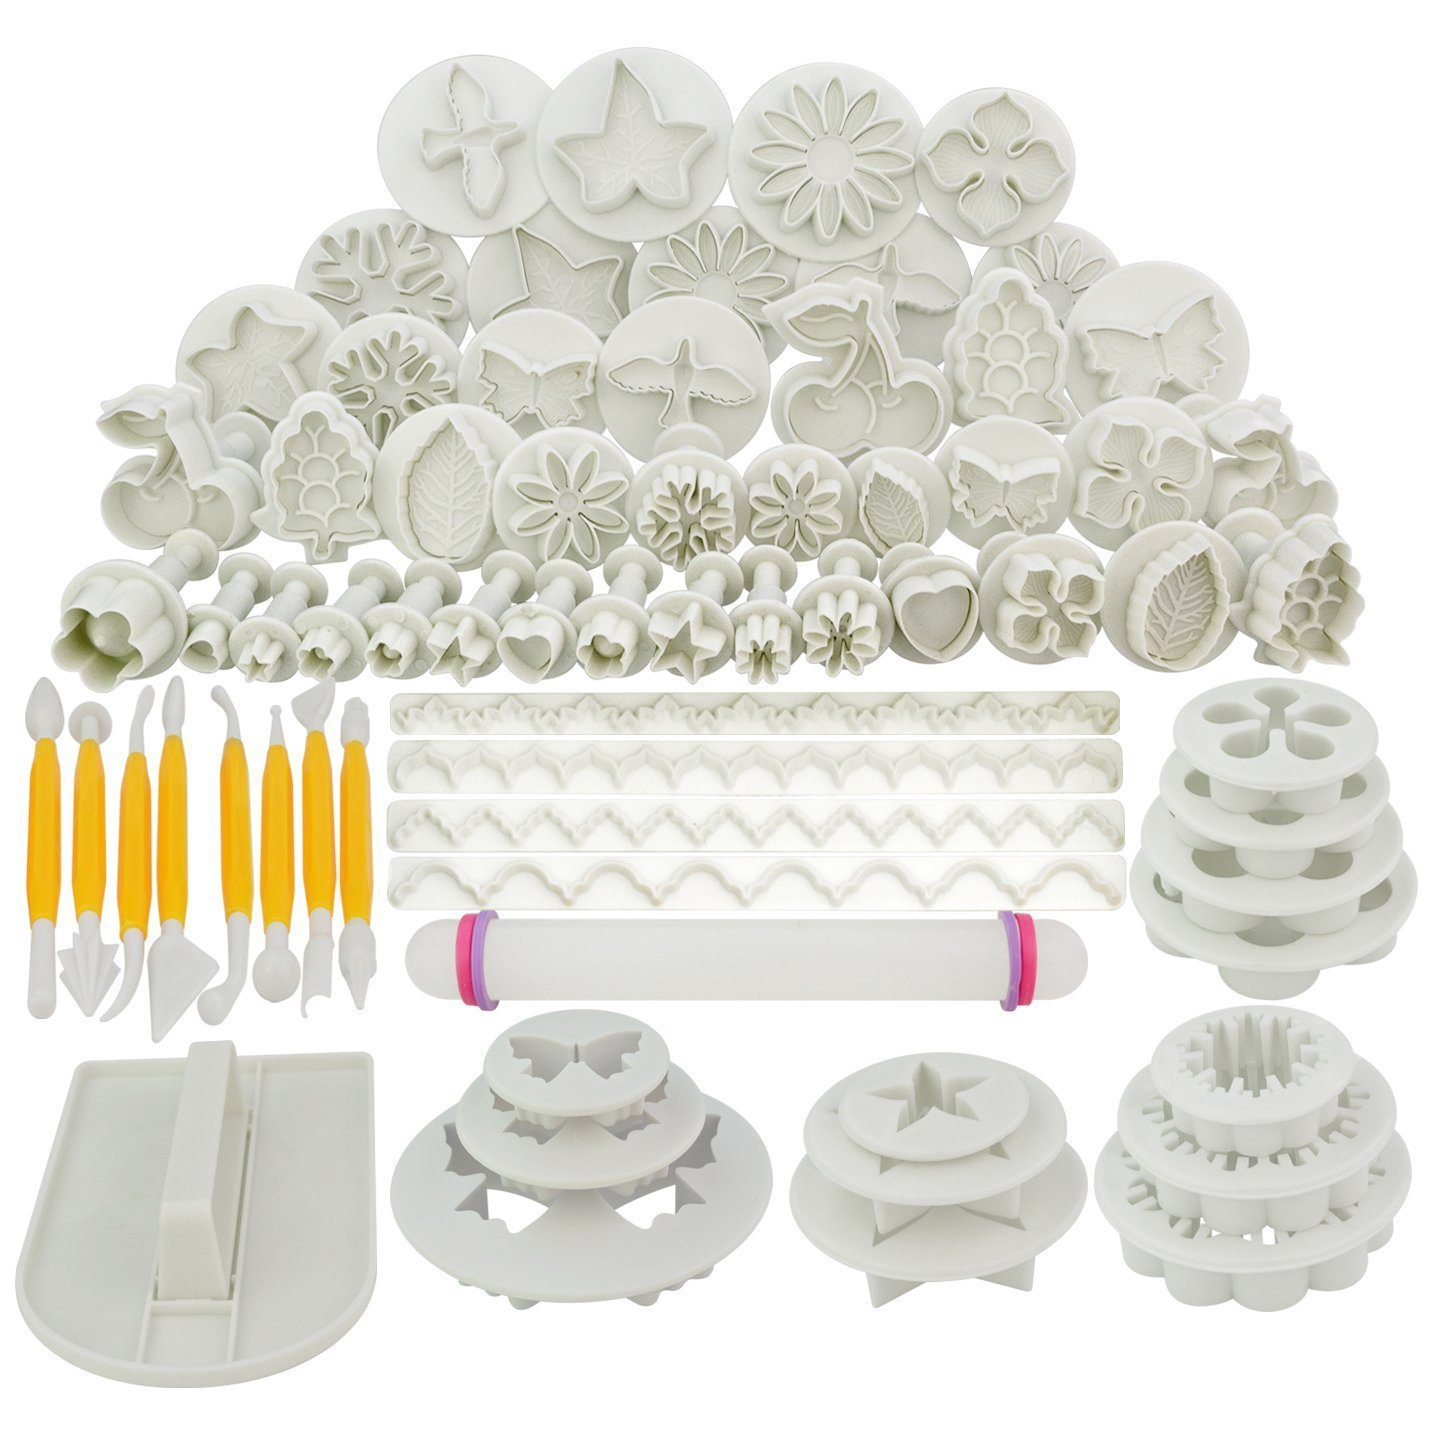 Marrywindix 68pcs 21 Sets Cake Decration Tool Set By Catalina Fondant Cake Cutter Mold Sugarcraft Icing Decorating Flower Modelling Tools by Marrywindix